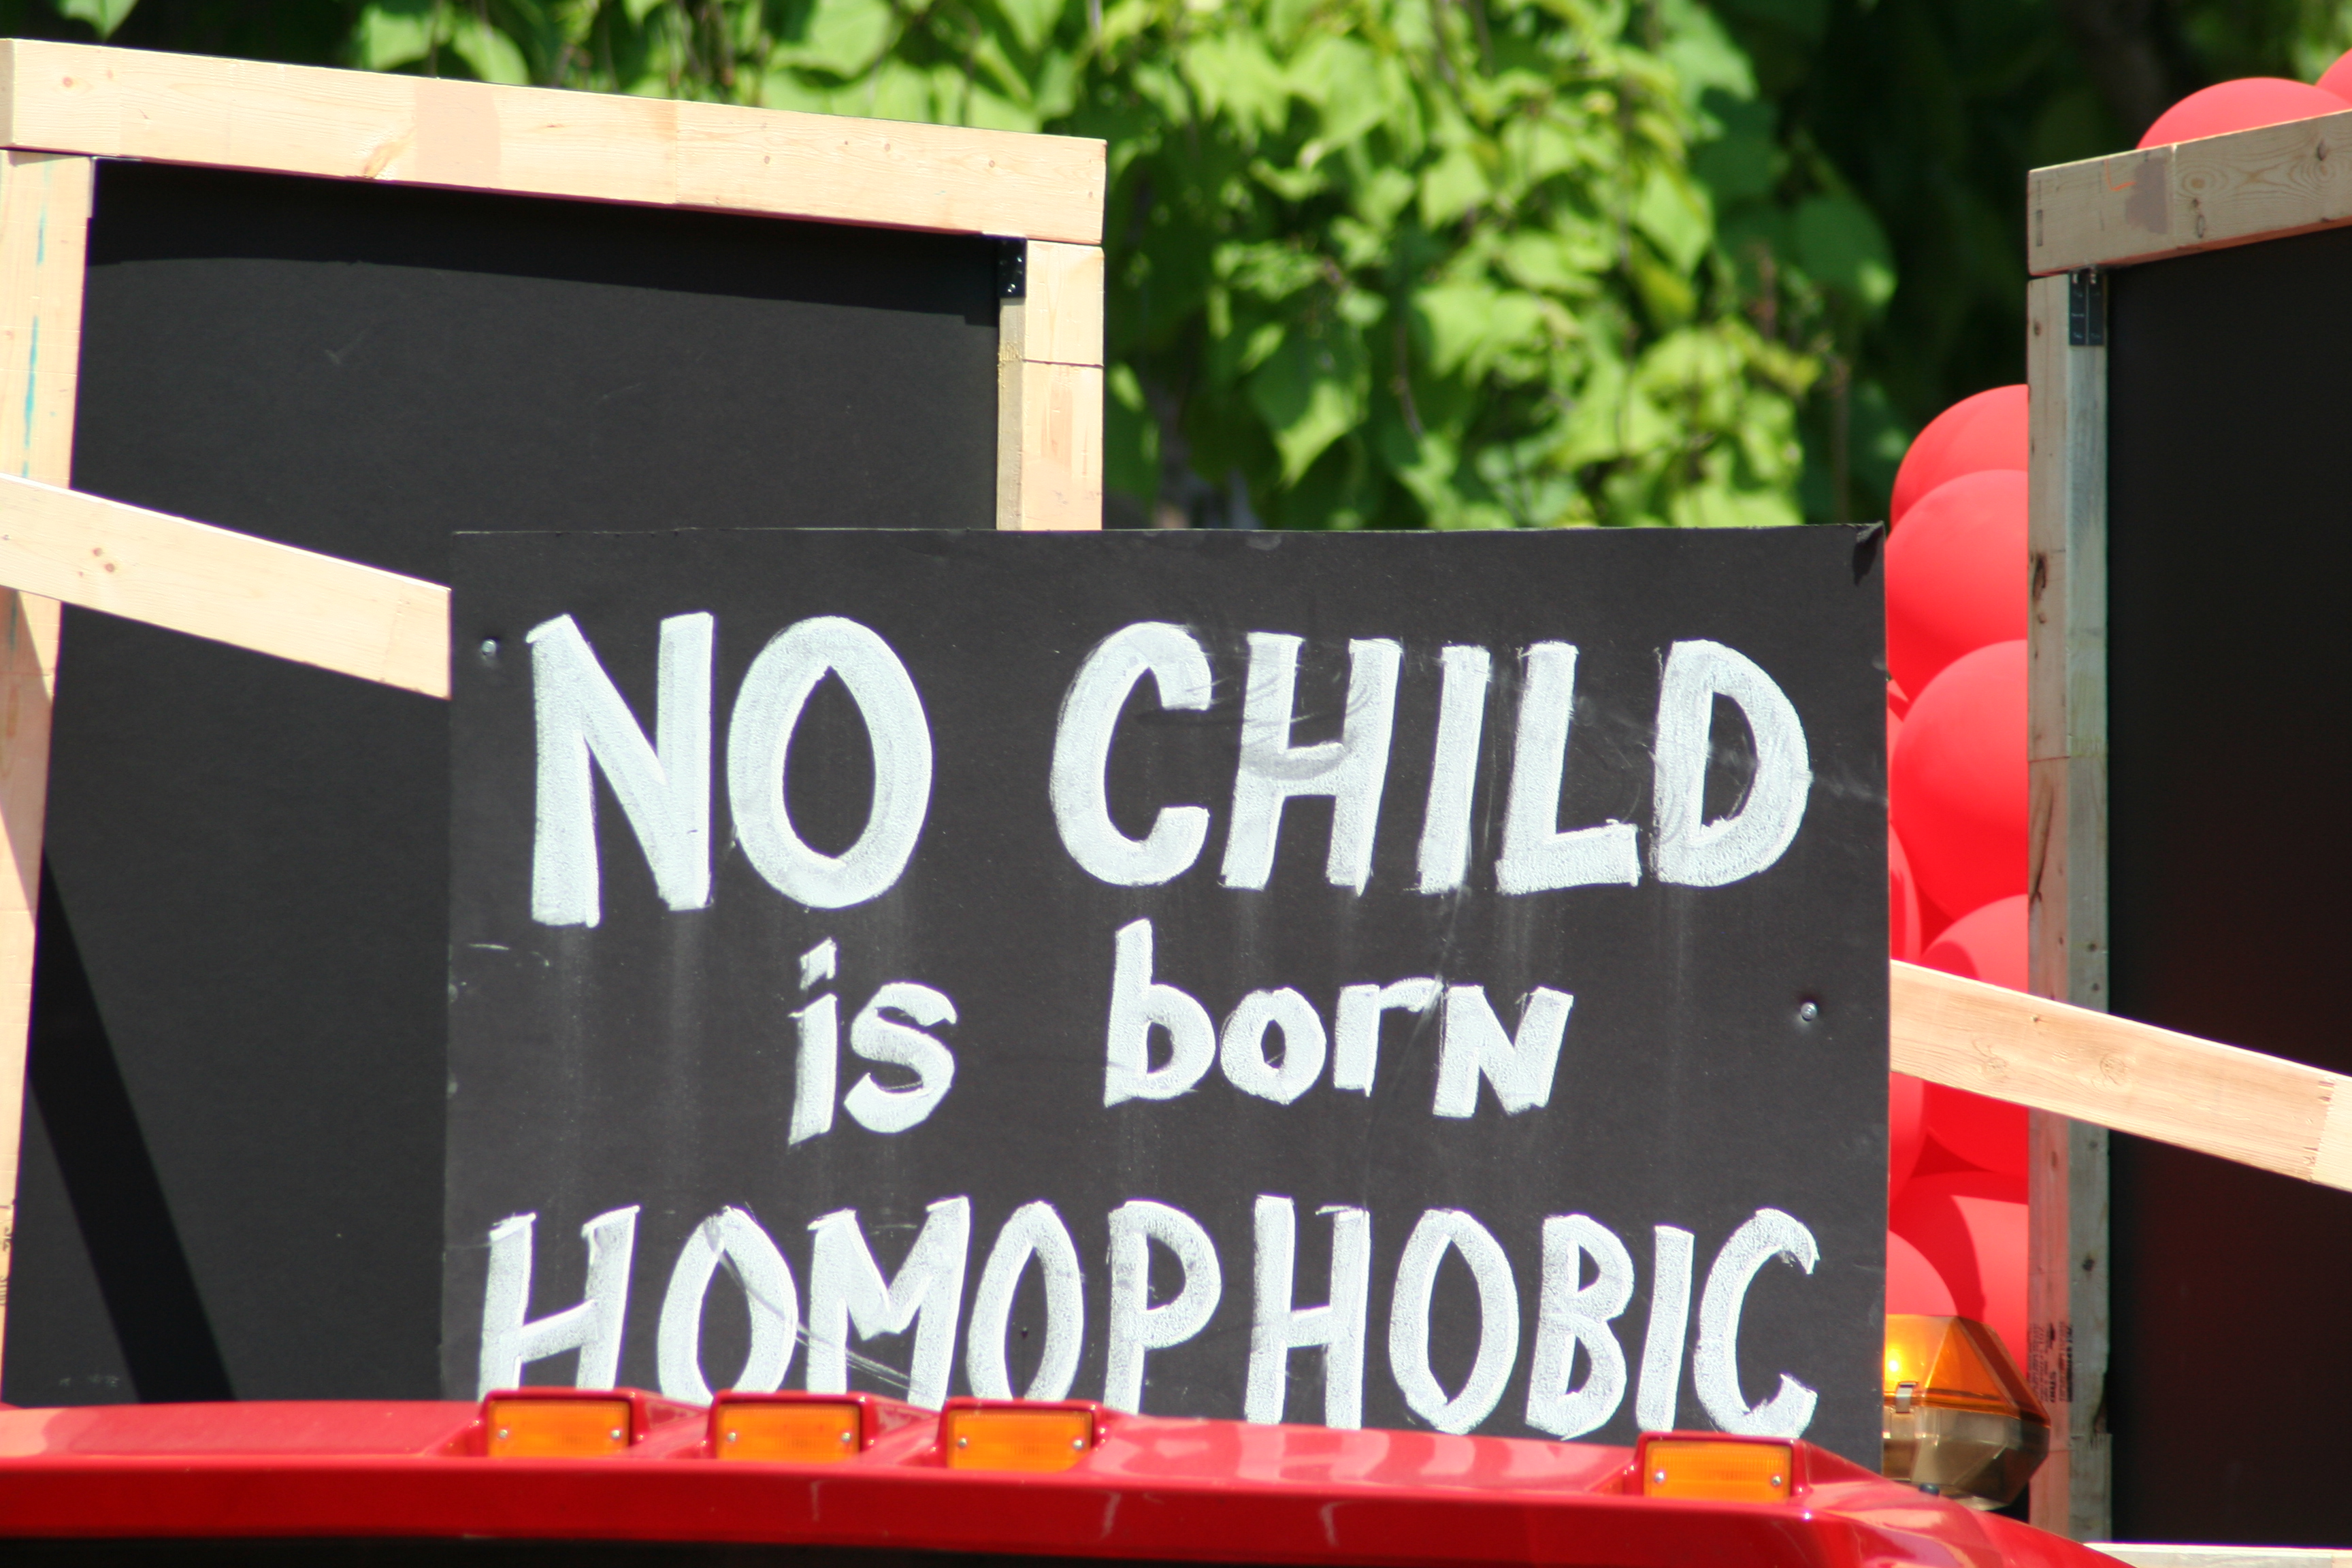 """No child is born homophobic"" from PaintingOnScars.com"